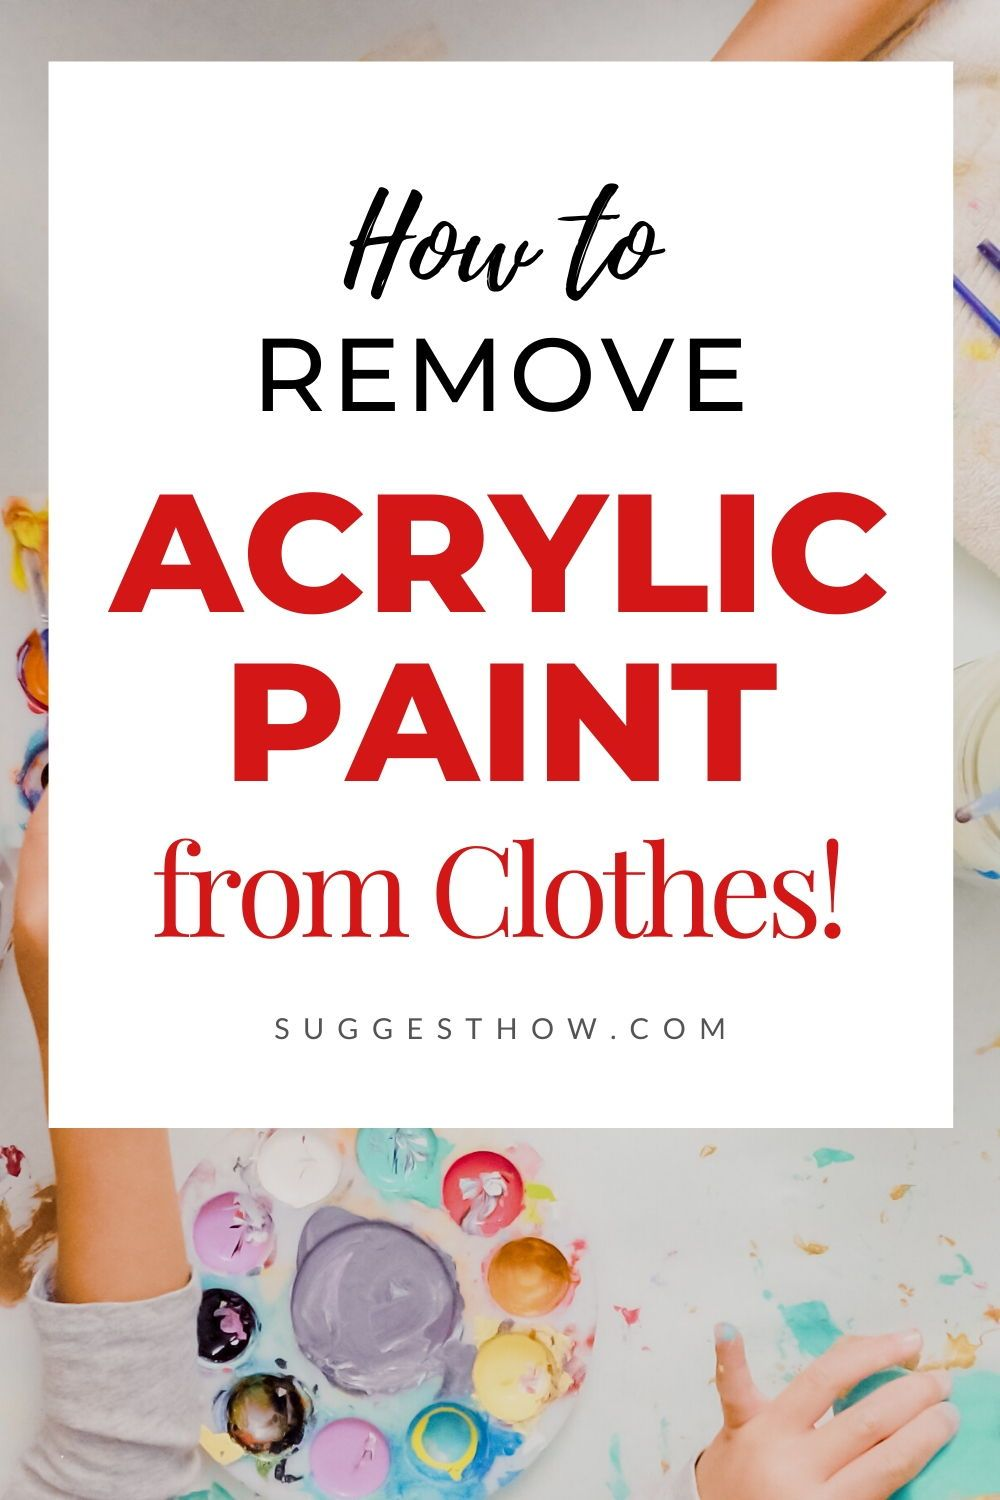 How To Remove Acrylic Paint From Clothes Remove Acrylic Paint Remove Acrylics How To Remove